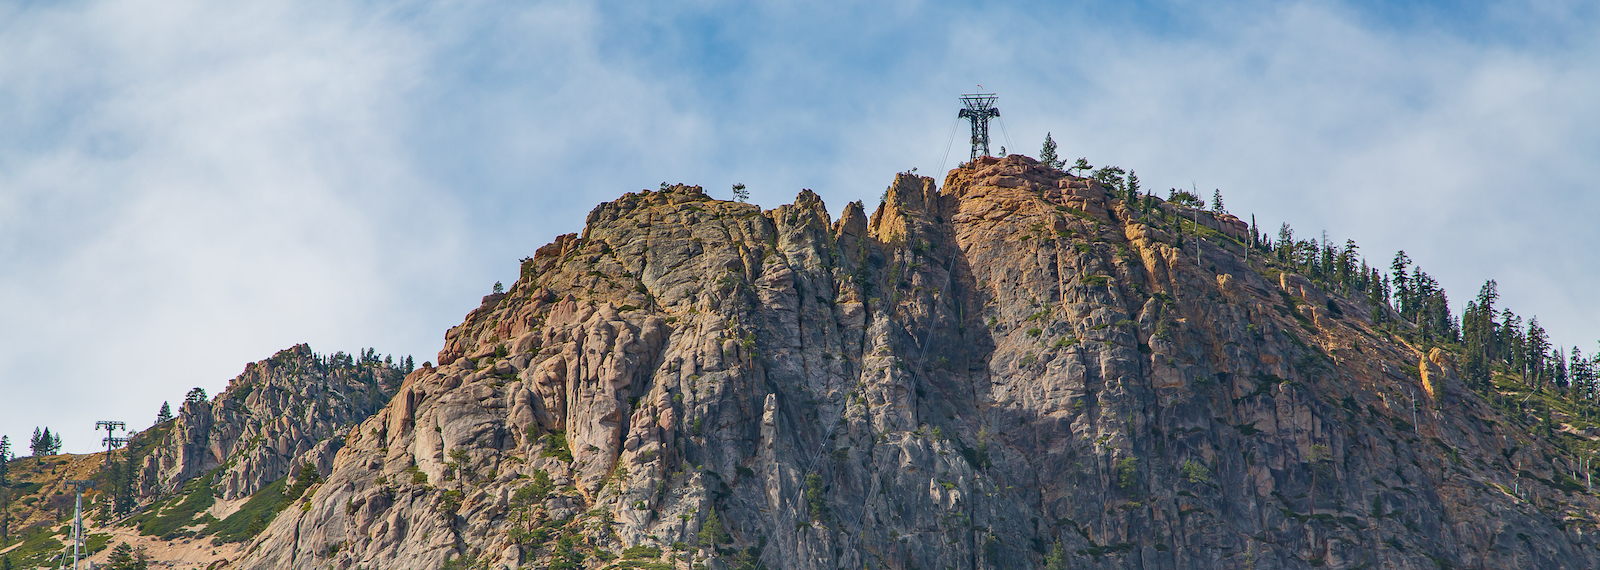 The iconic tram face and home of the Tahoe Via Ferrata